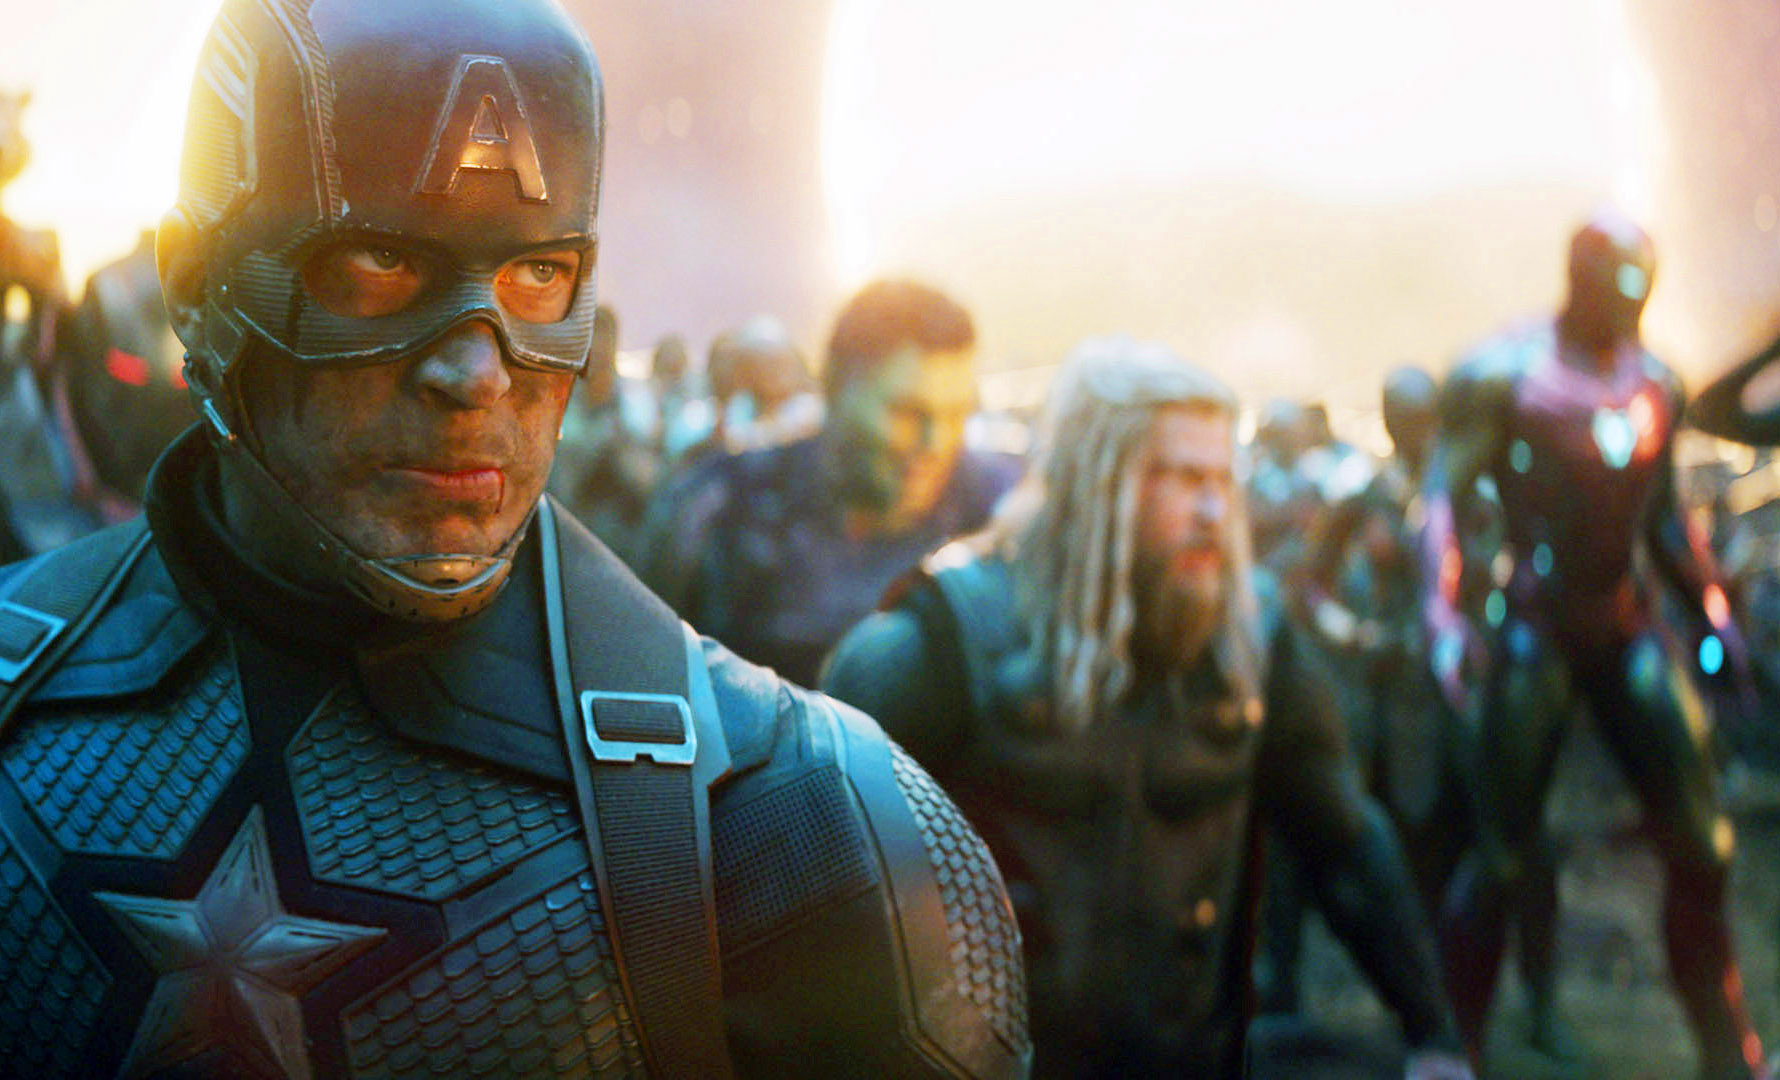 Photo of Now It's Official: The Avengers End of the Game is the all-time cinematic film